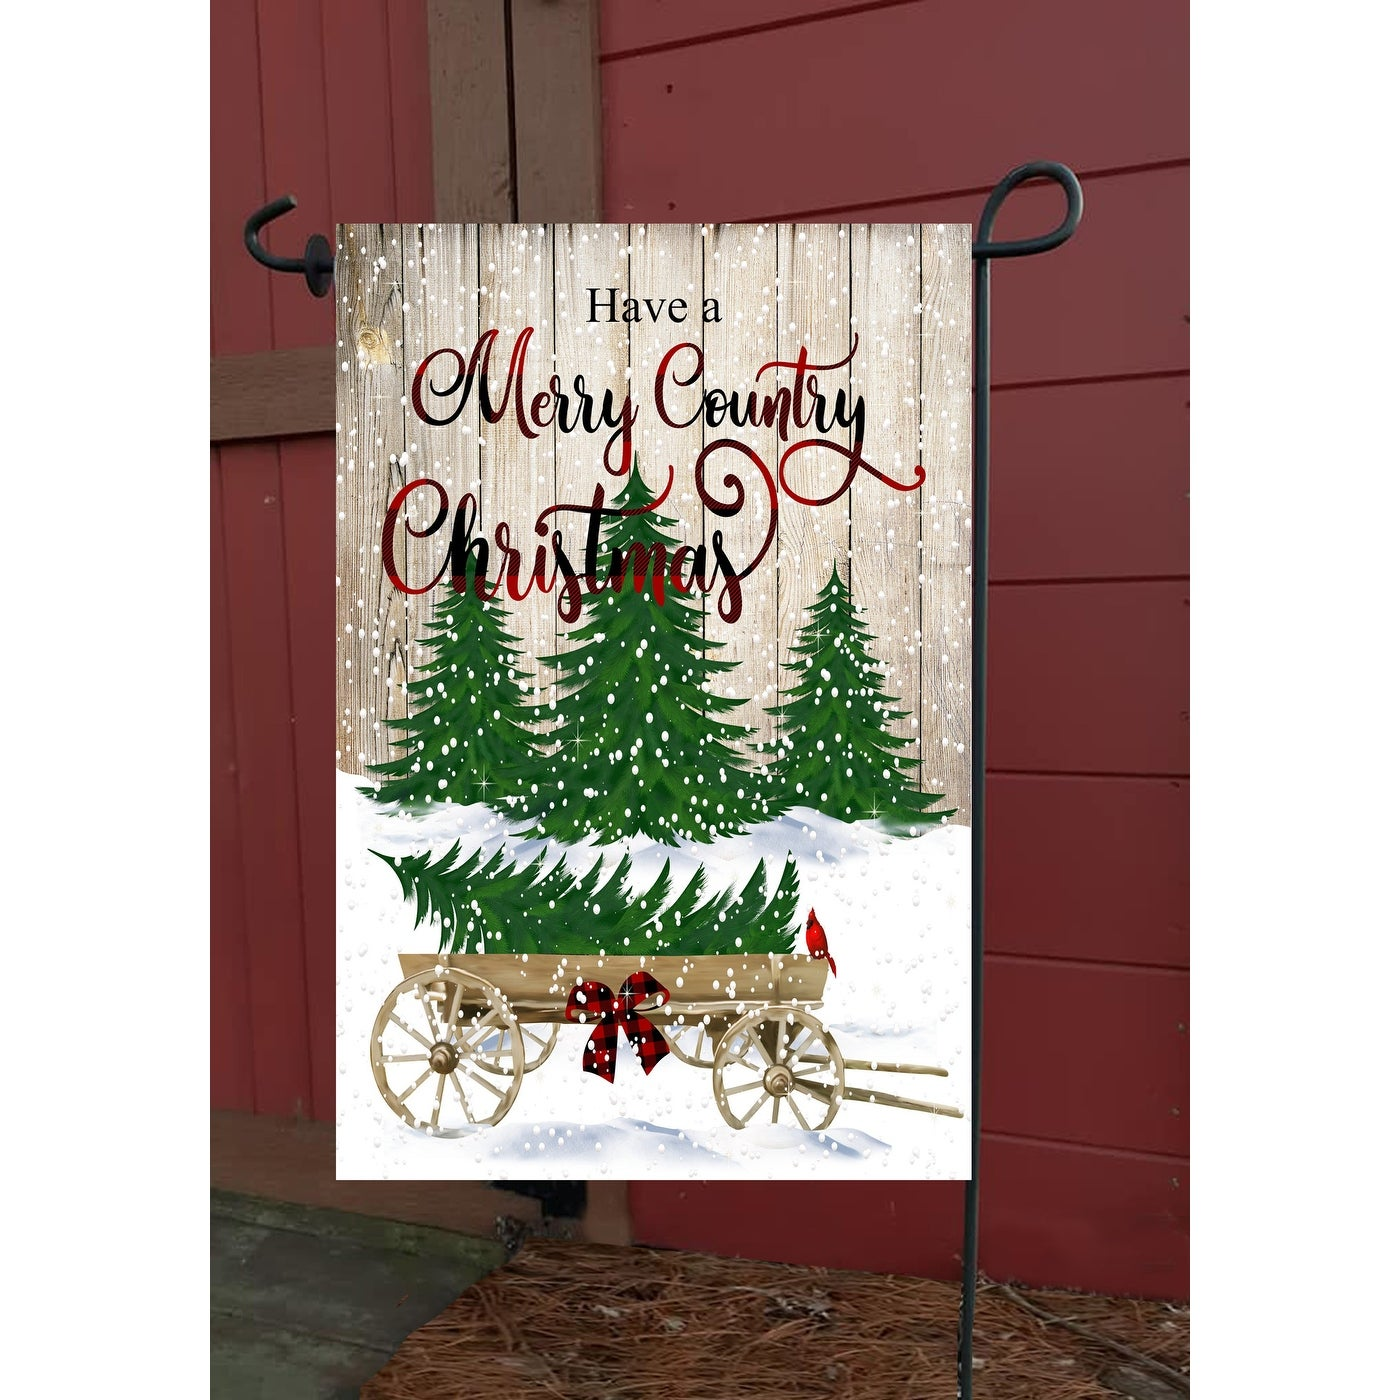 Vibrant Merry Country Christmas Decorative Rectangular Garden Flag 18 X 12 Overstock 32211217